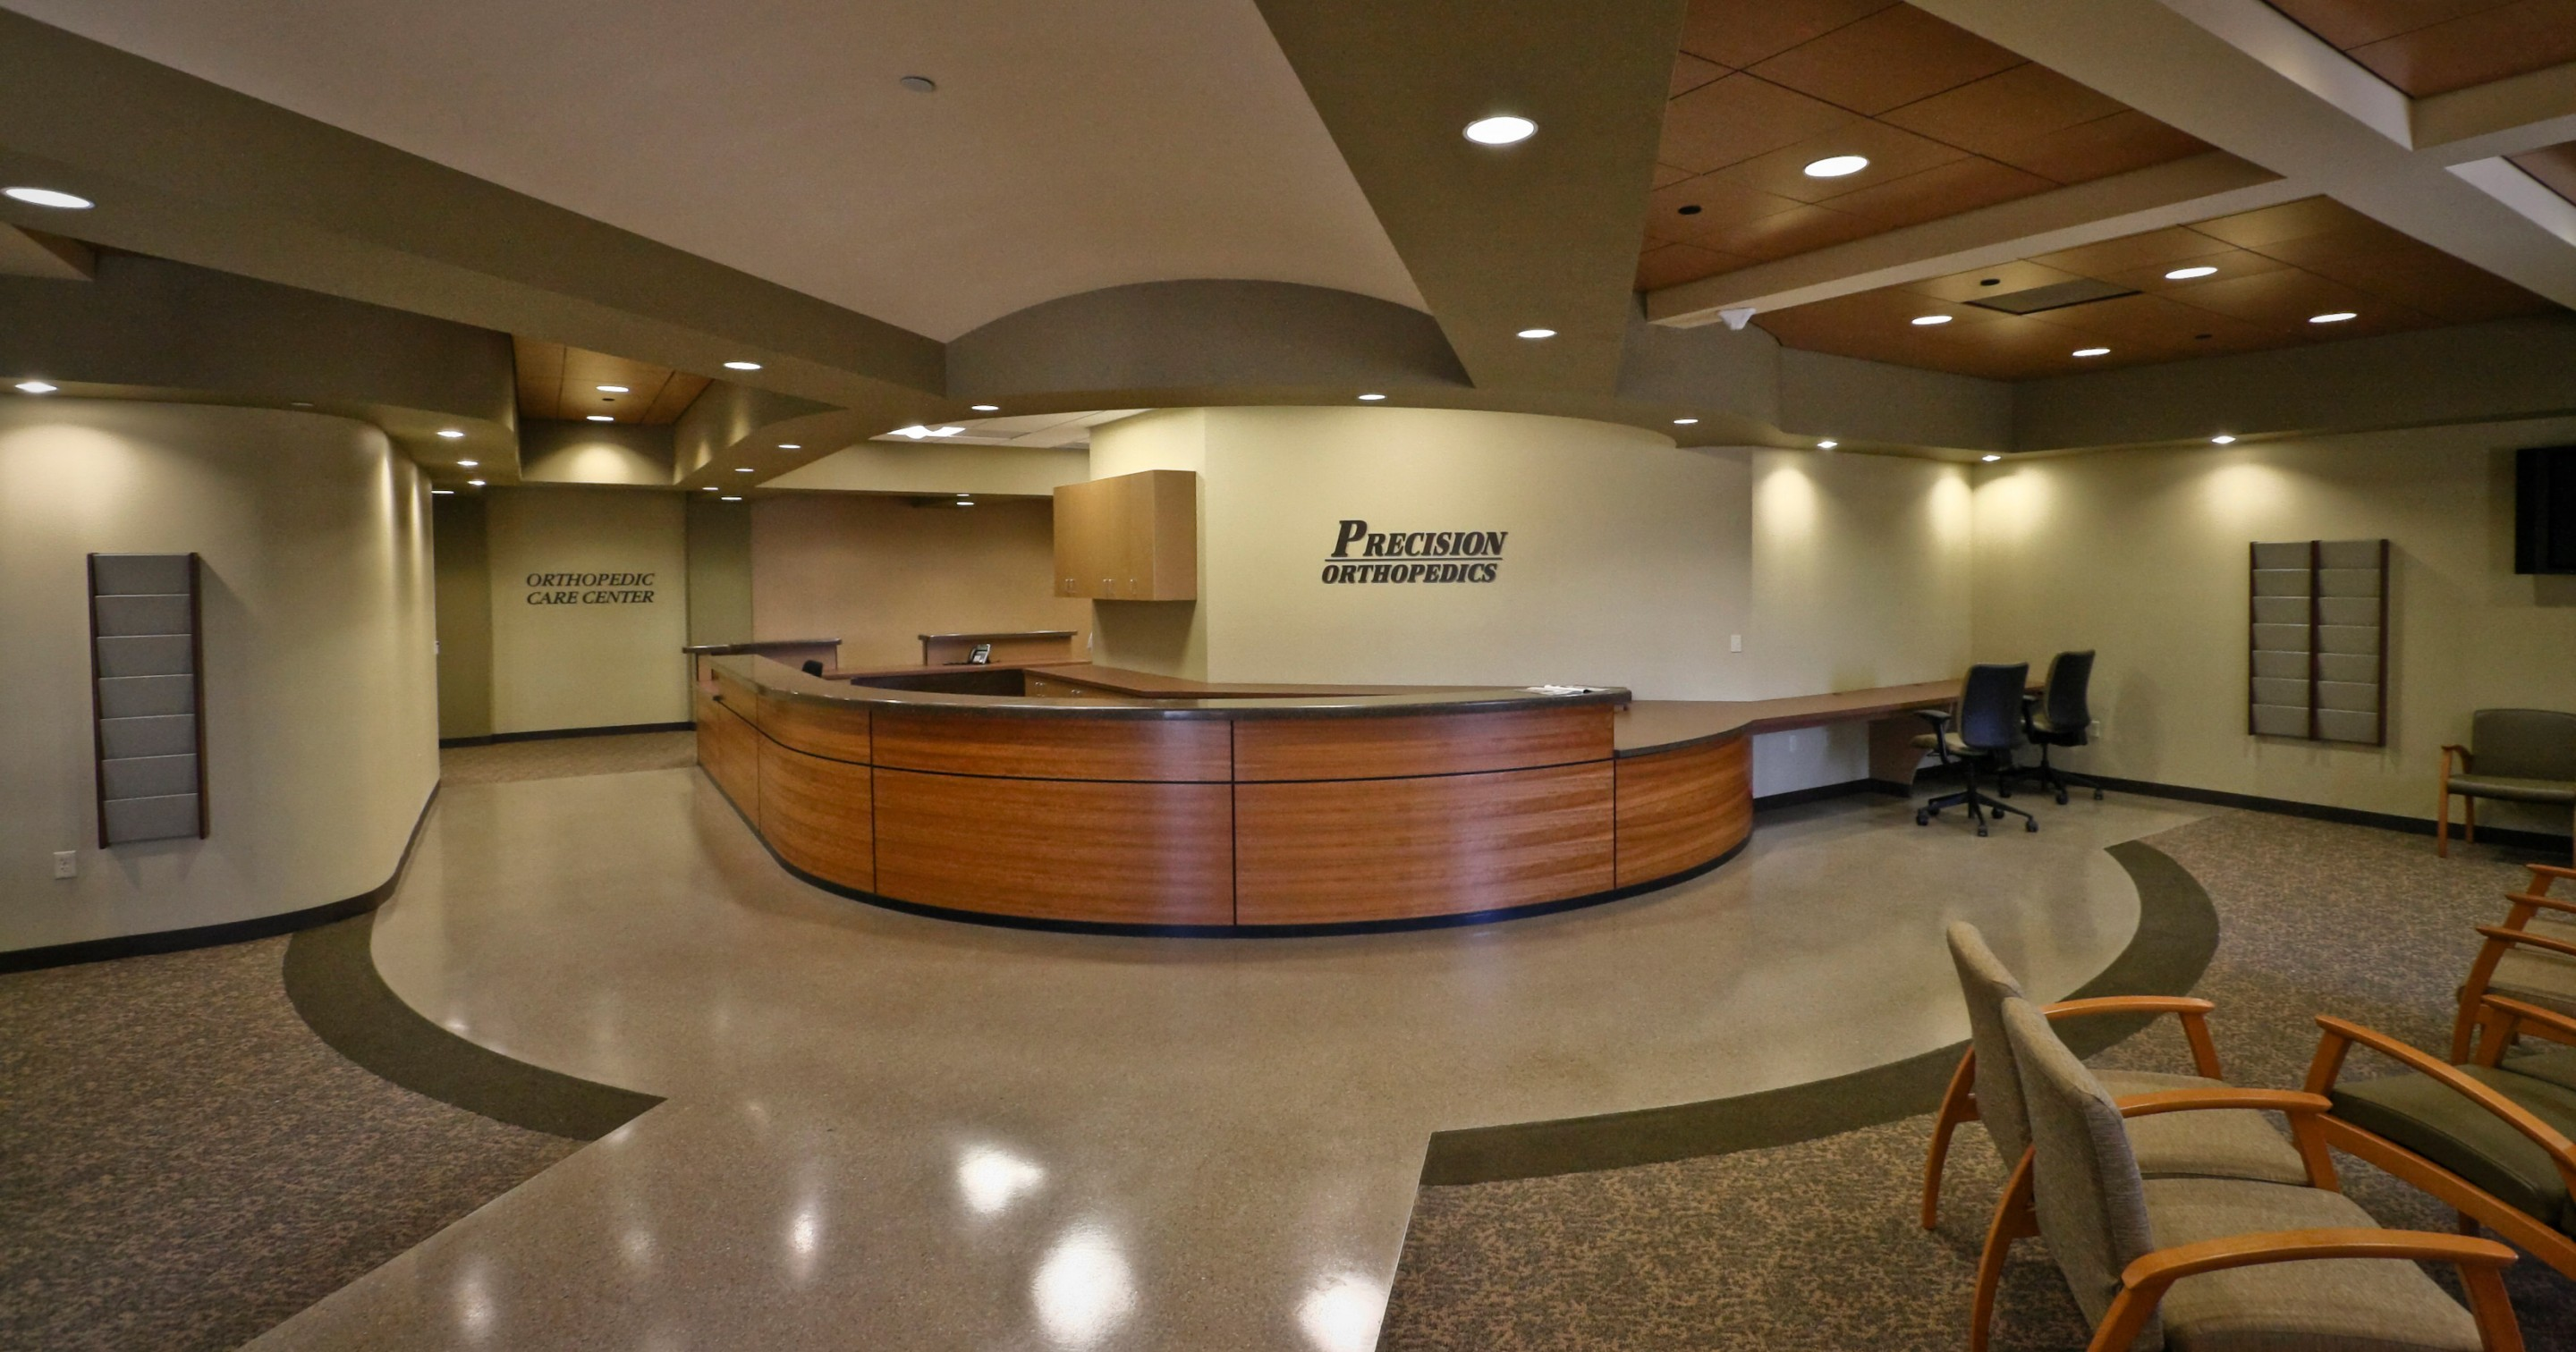 611 Abbott Medical Office Building - Wald, Ruhnke & Dost Architects